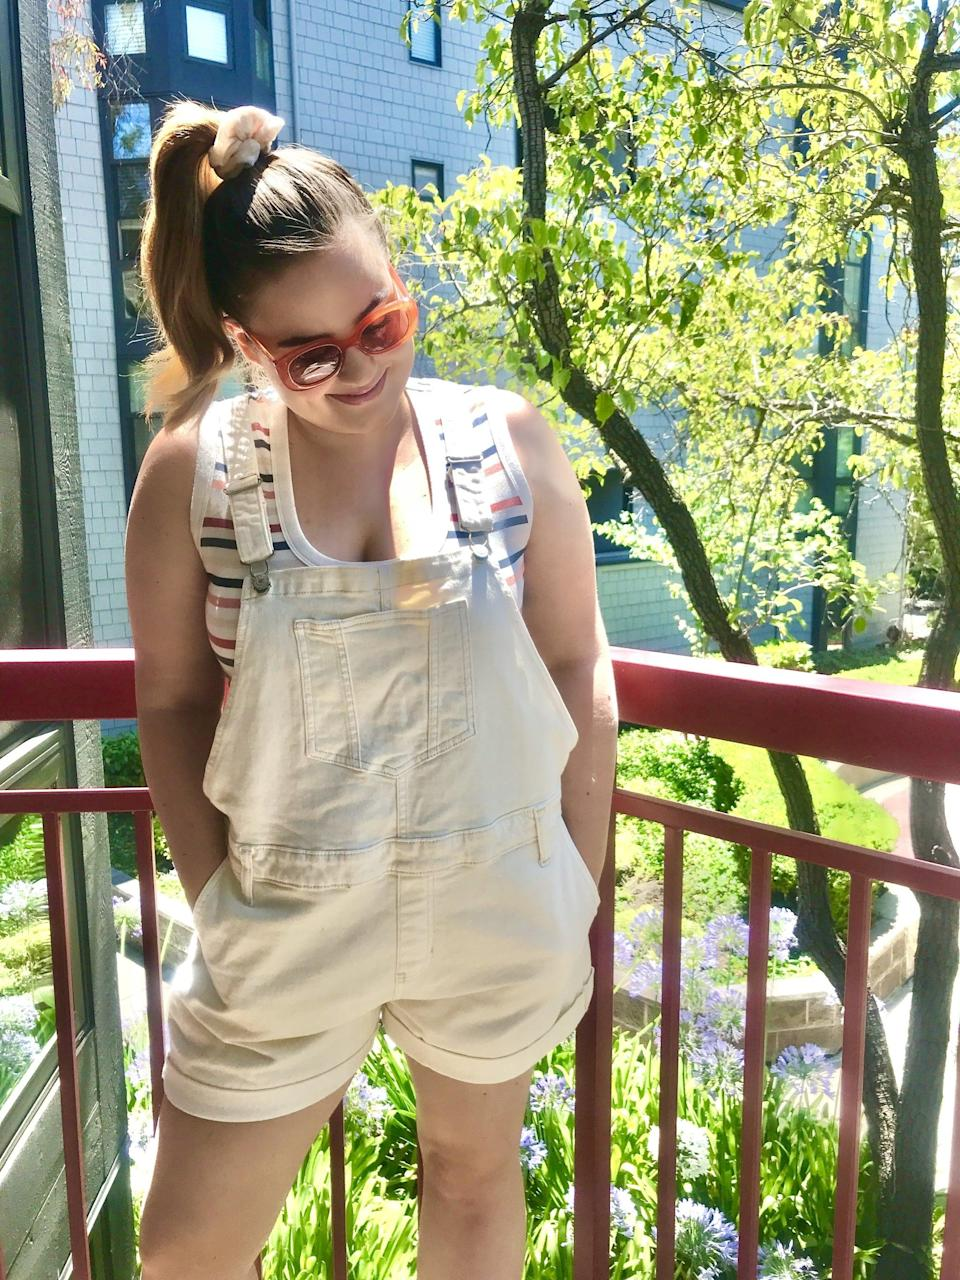 "<p><strong>The item:</strong> <span>Old Navy Off-White Jean Shortalls</span> ($32, originally $45)</p> <p><strong>What our editor said:</strong> ""Not only are they ridiculously comfy, they are also easier to wear when running errands or doing home improvements. I feel like I can move around in them without any restrictions. I also appreciate that they have tons of pockets (yay for not carrying a purse!) and the denim is soft, not rigid. They're available in sizes XS to XXL (I take the large, for reference) and the straps are adjustable. I just throw on a T-shirt or tank top underneath and I'm ready to go. I've even been using these overall shorts as a swimsuit cover-up sometimes."" - MCW</p> <p>If you want to read more, here is the <a href=""https://www.popsugar.com/fashion/most-comfortable-overall-shorts-47596470"" class=""link rapid-noclick-resp"" rel=""nofollow noopener"" target=""_blank"" data-ylk=""slk:complete review"">complete review</a>:</p>"